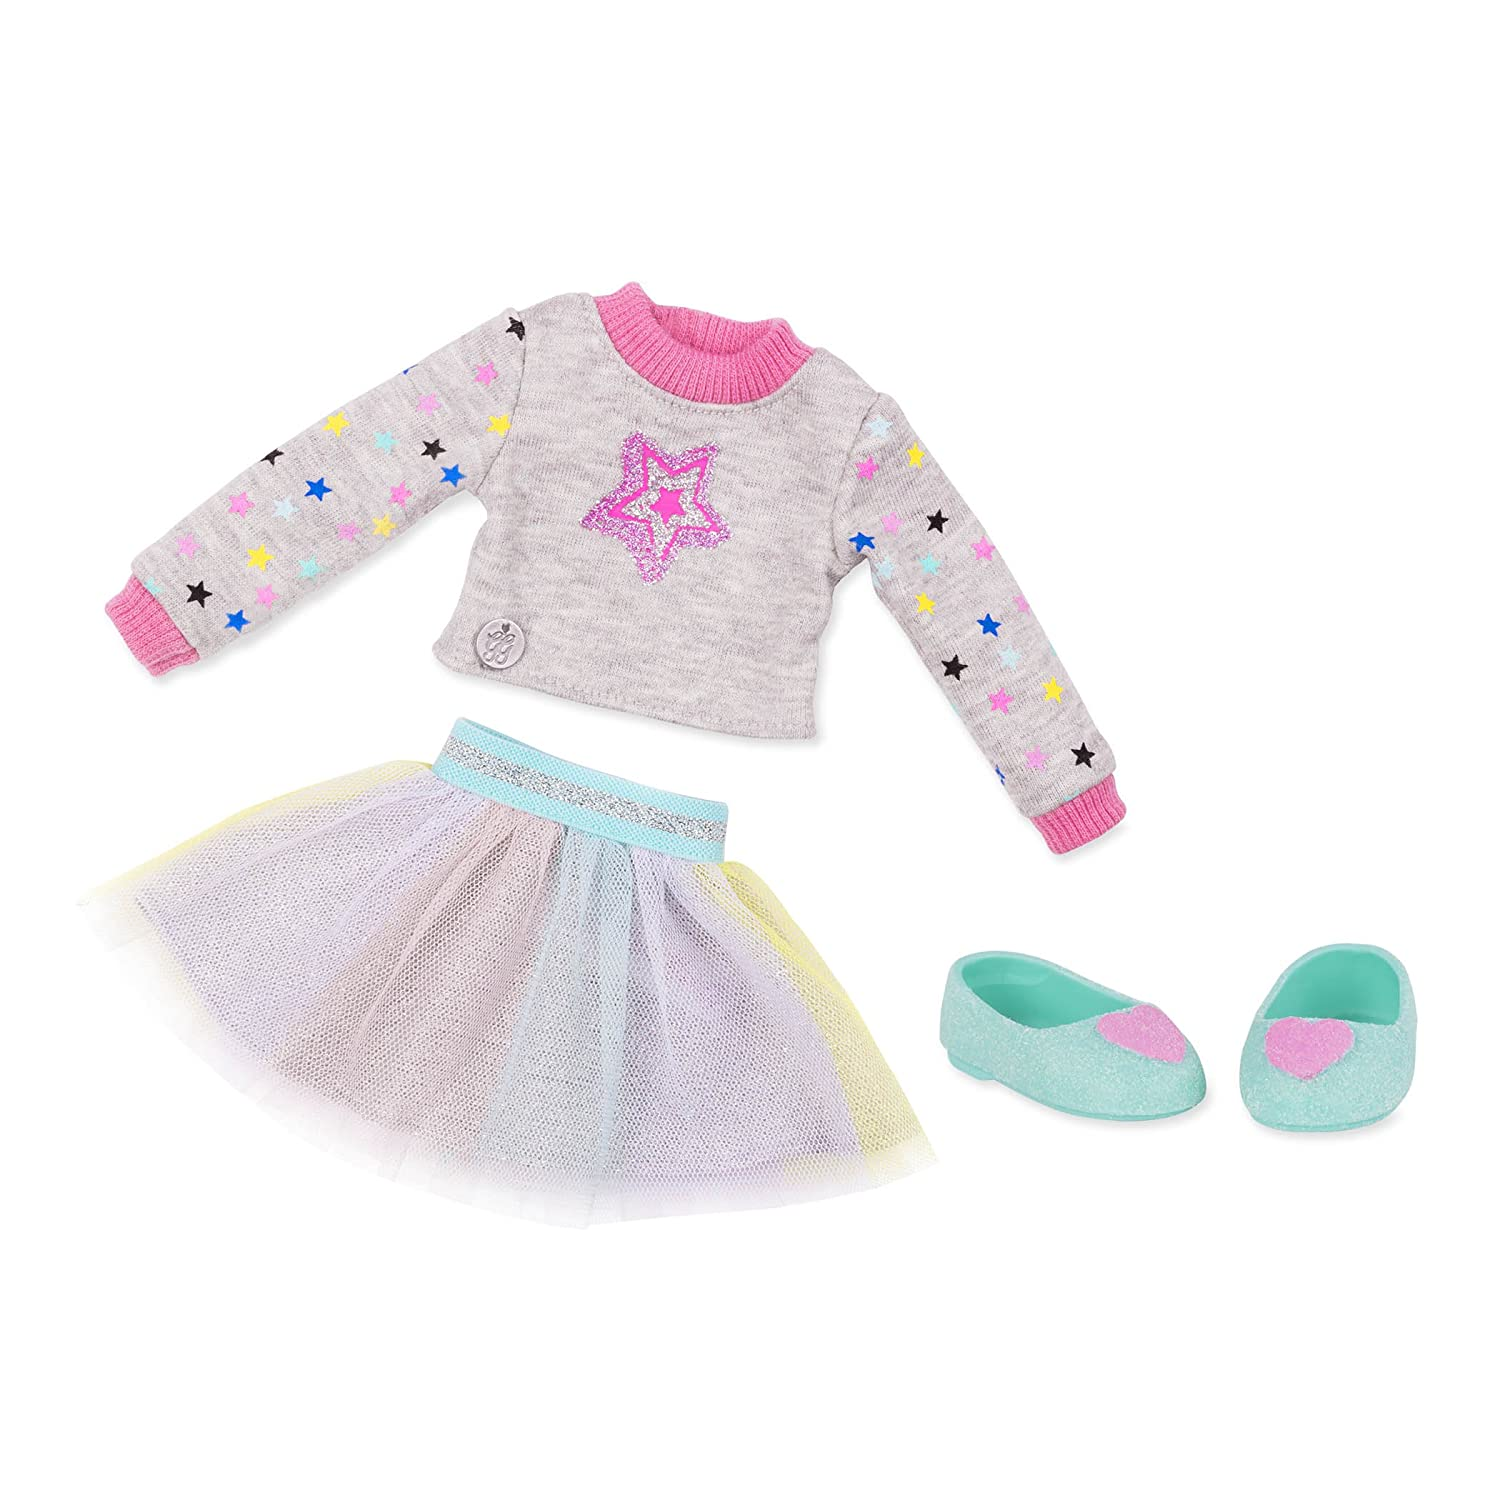 Glitter Girls by Battat - Sparkling with Style Glittery Top & Skirt Regular Outfit - 14' Doll Clothes & Accessories Toys